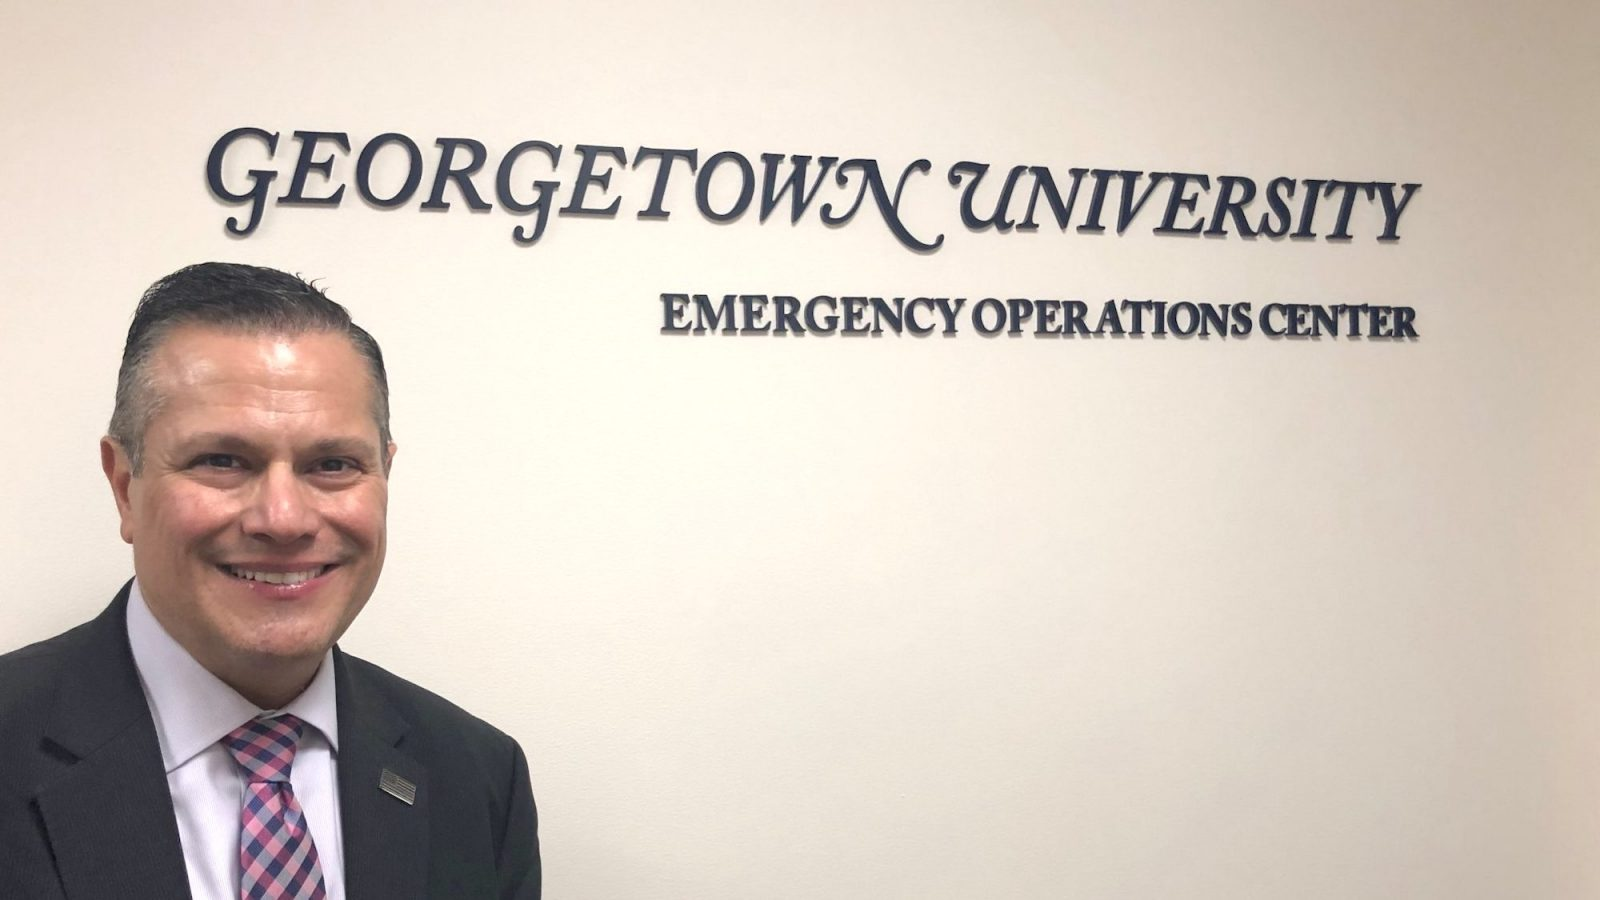 Marc Barbiere stands in front of Georgetown University Emergency Operations Center sign